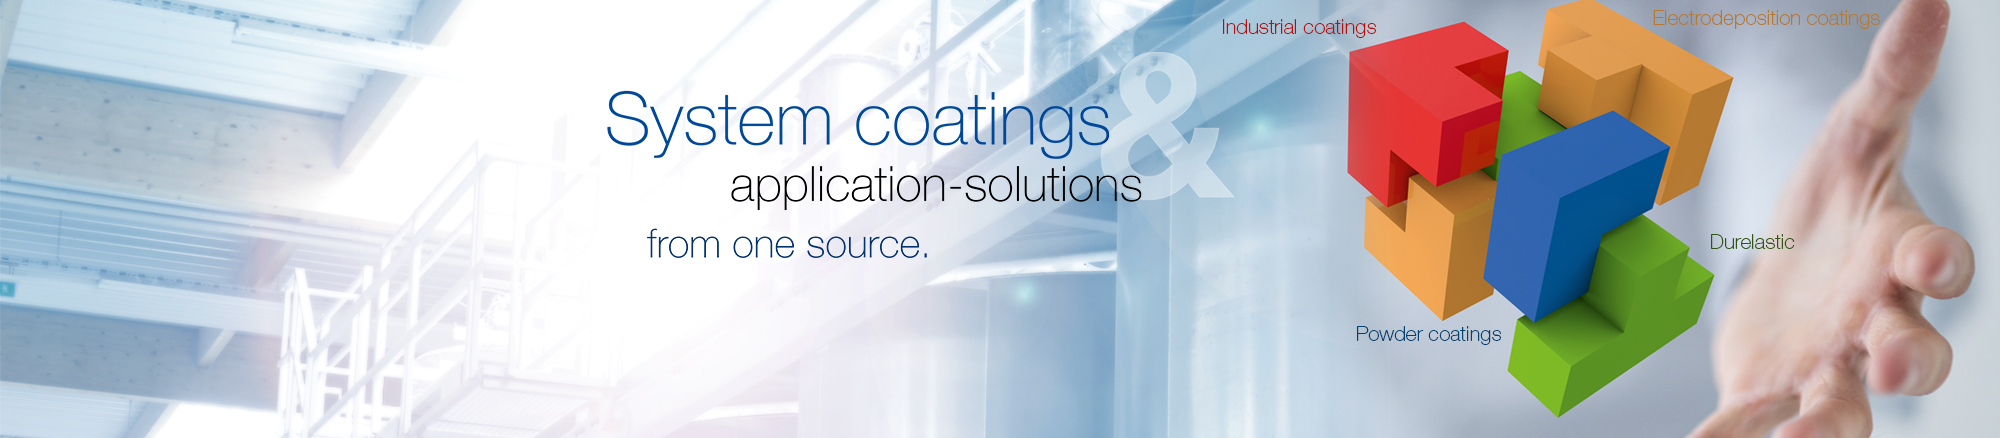 System coatings & application solutions from one source